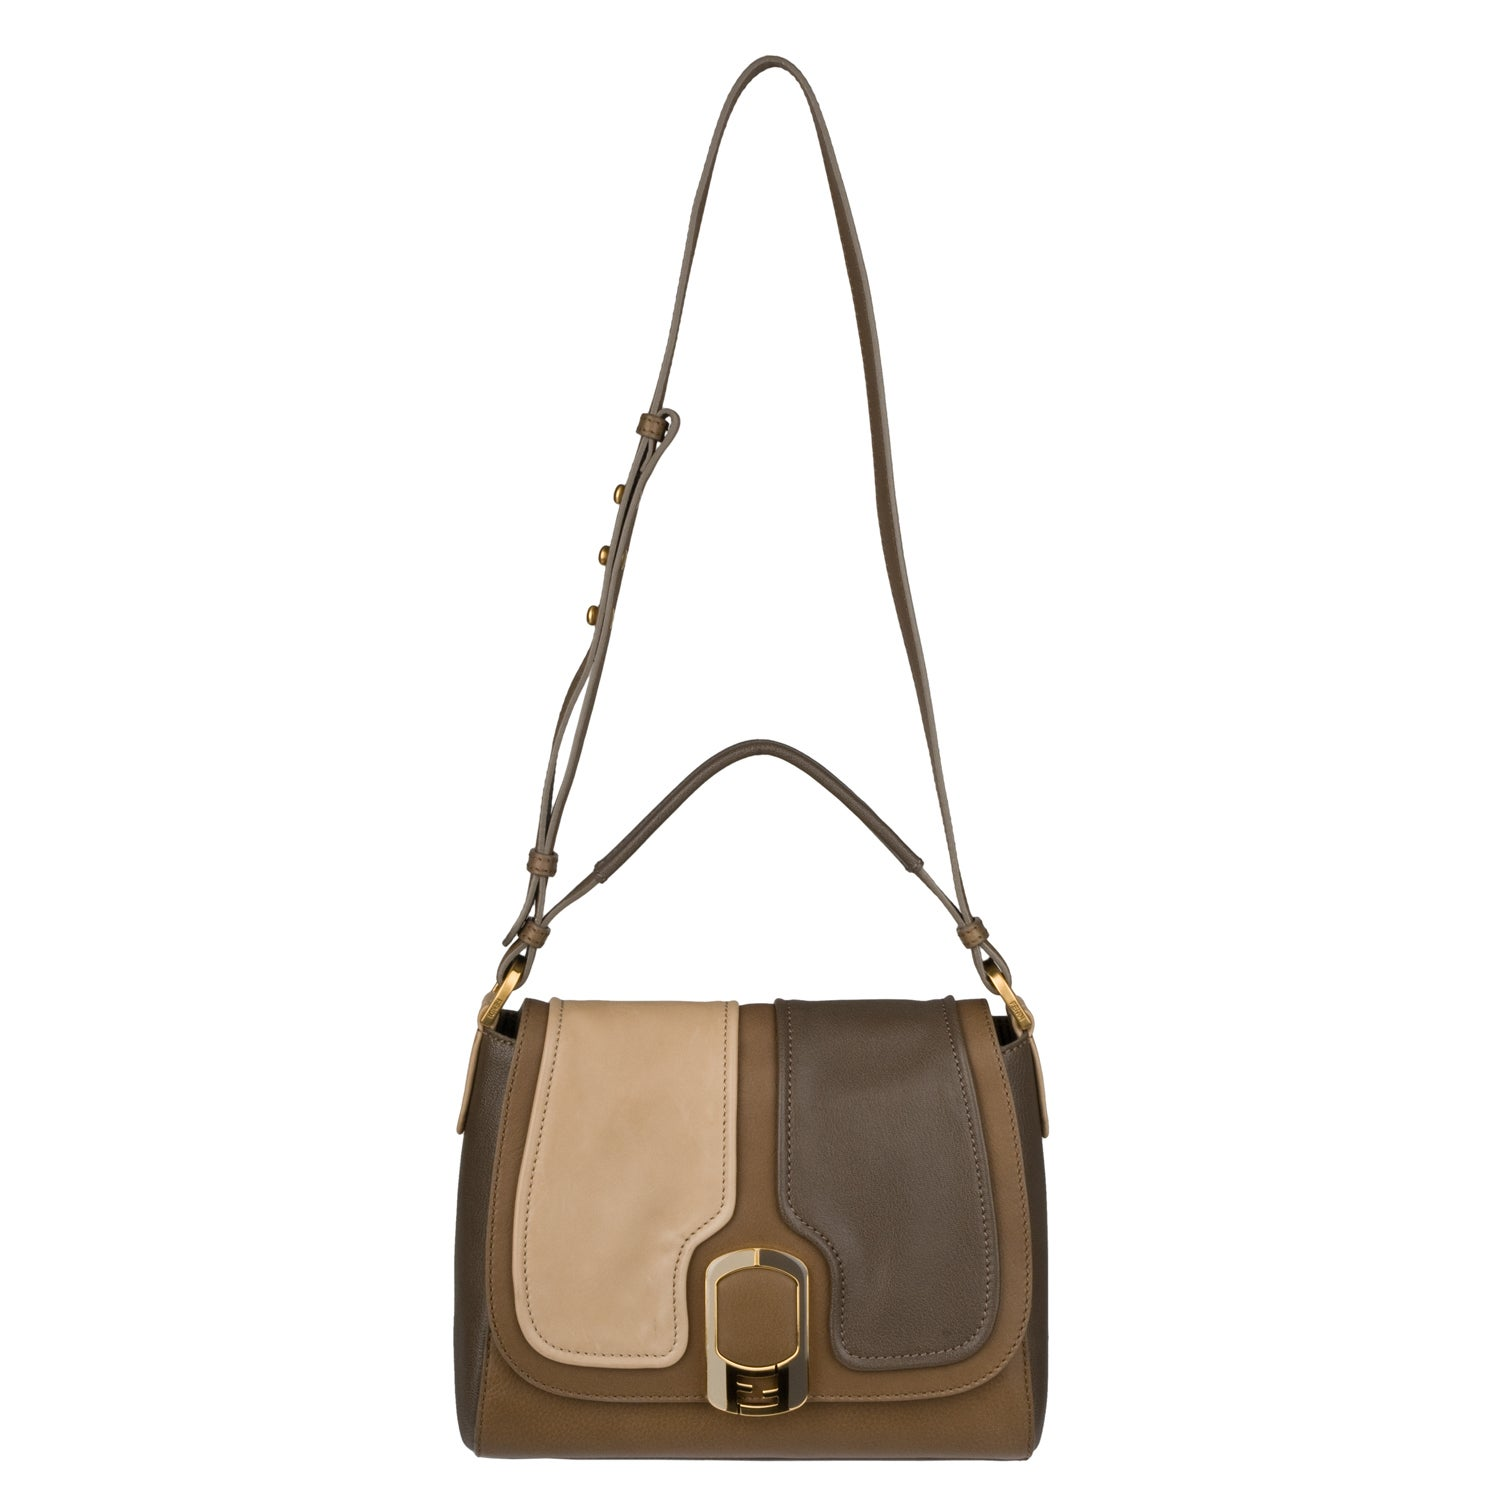 Fendi 'Anna' Light Brown/Beige/Taupe Leather Shoulder Flap Bag